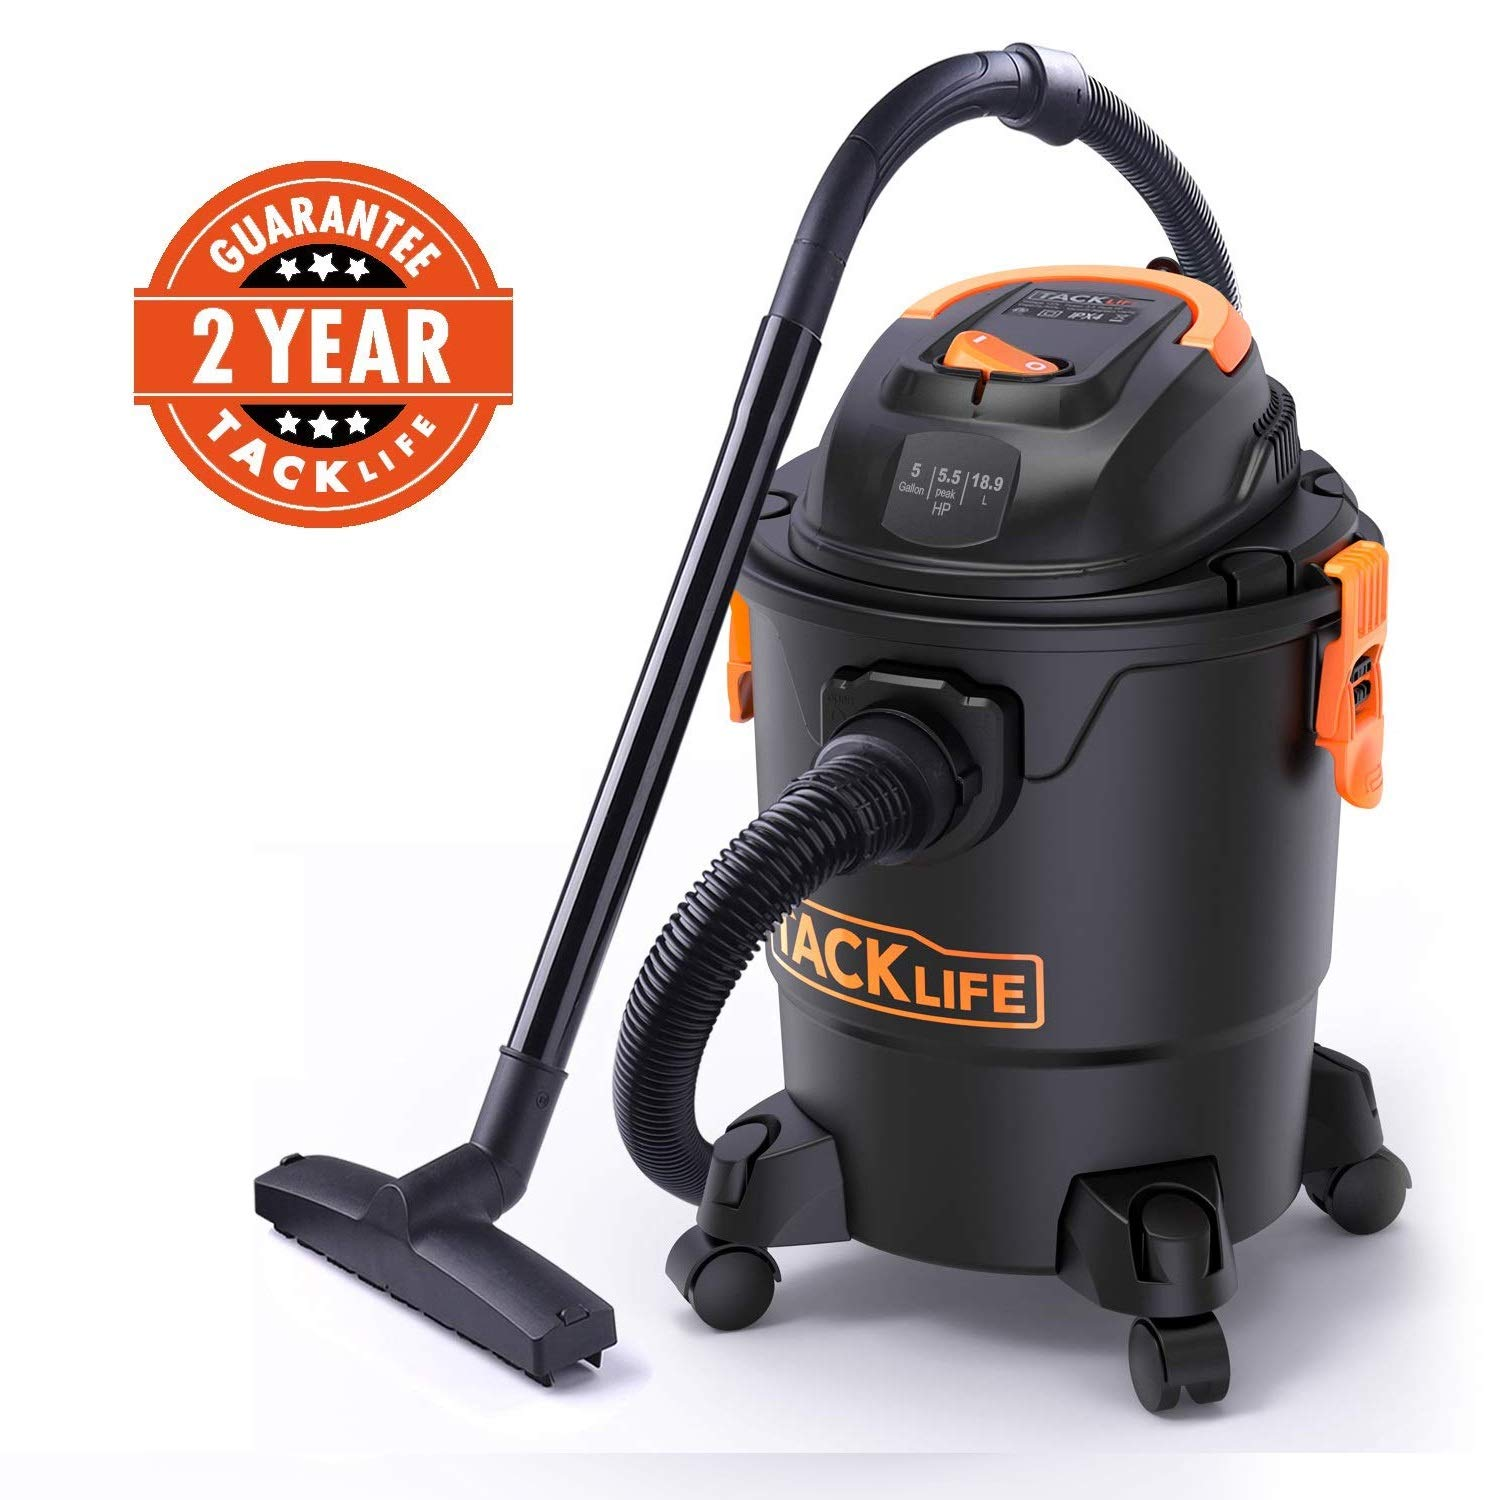 TACKLIFE Wet Dry Vacuum 5.5HP 5 gal Shop Vac with Wet Suction/Dry Suction/Blowing 85CFM wide cleaning range, suitable for home, garden,garage, workshop or vehicles-PVC01A